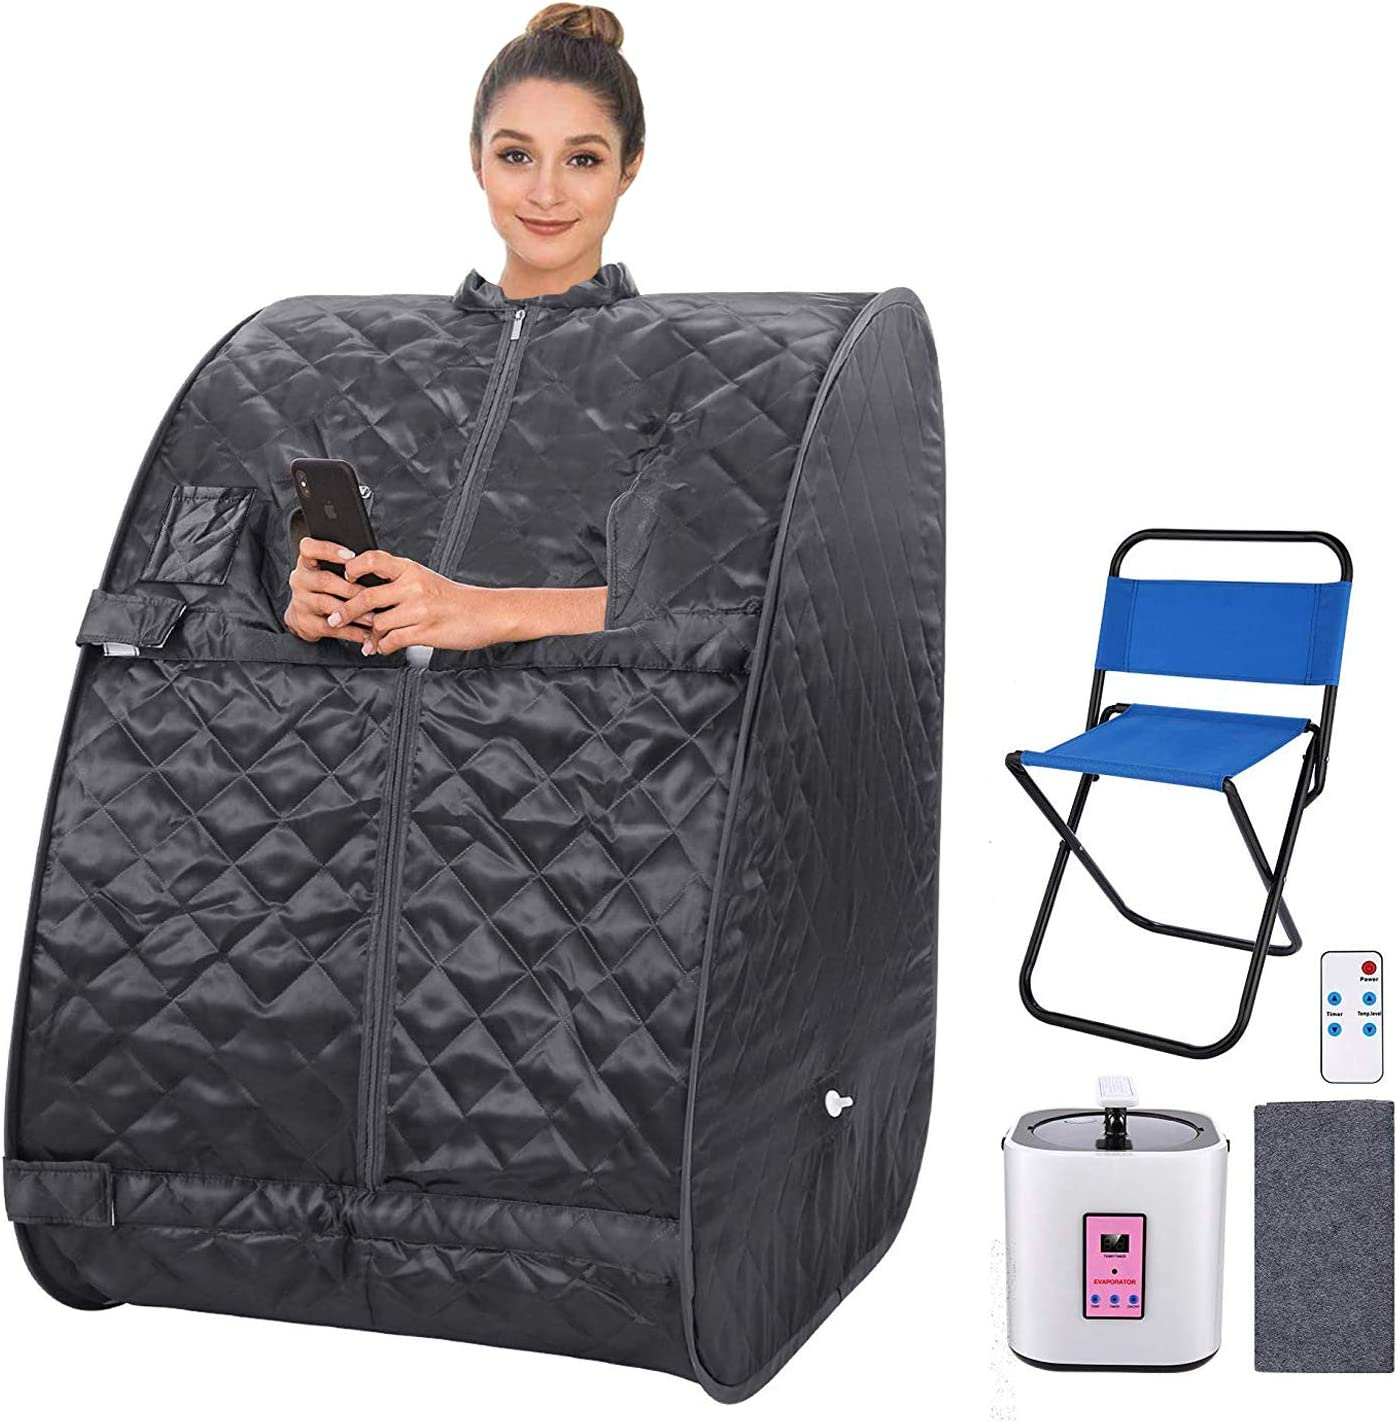 Portable Personal Sauna 2L Home Steam Sauna Tent Folding Indoor Sauna Spa Weight Loss Detox with Remote Control, Timer, Foldable Chair (Dark Grey)